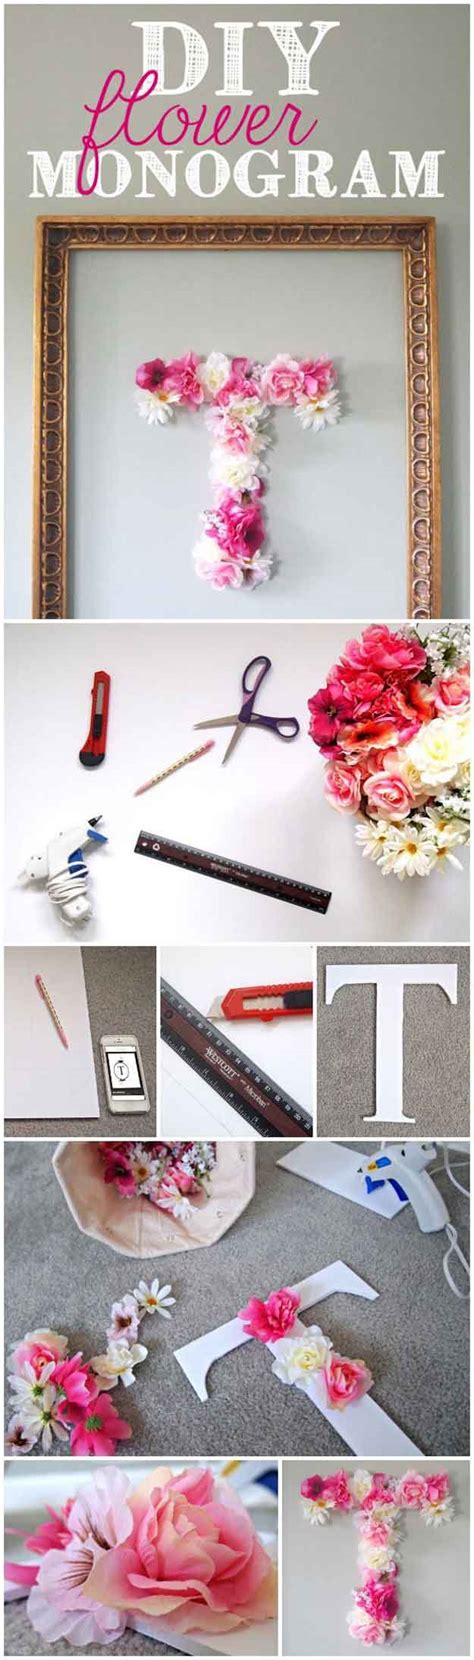 diy decorations for bedroom diy projects for bedroom diy ready